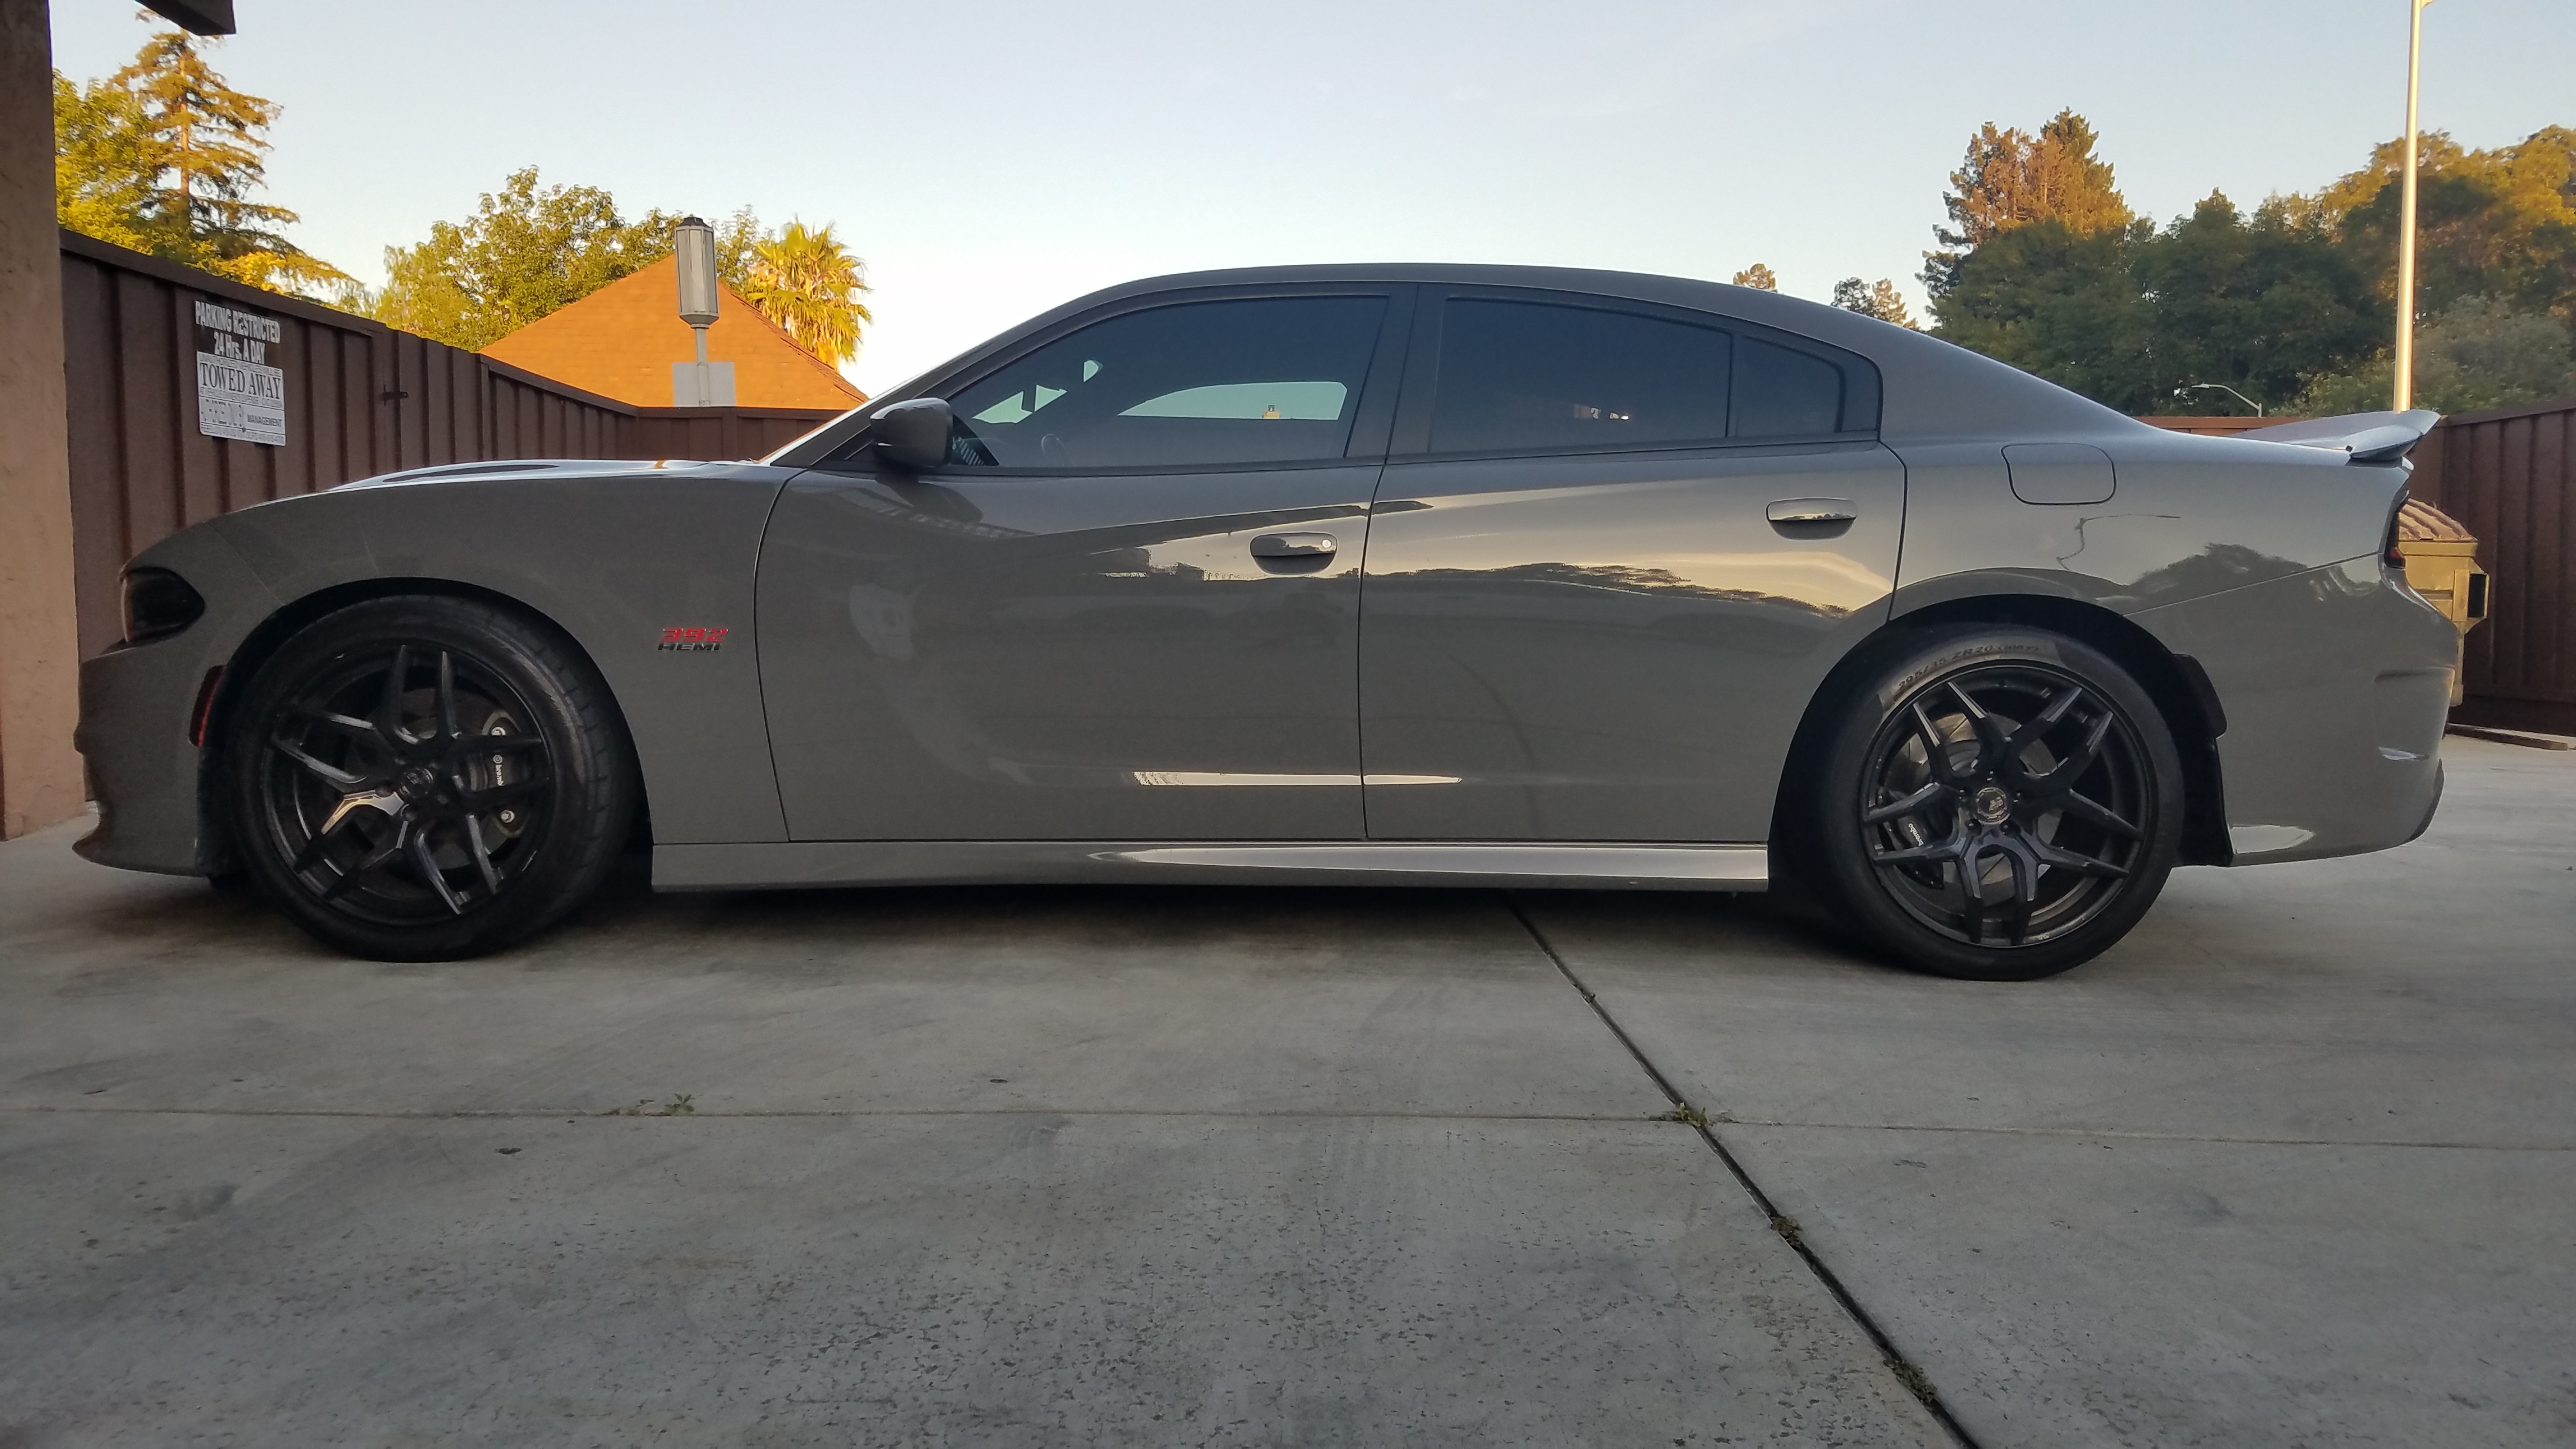 2018 Dodge Charger R/T Scat Pack - Side View